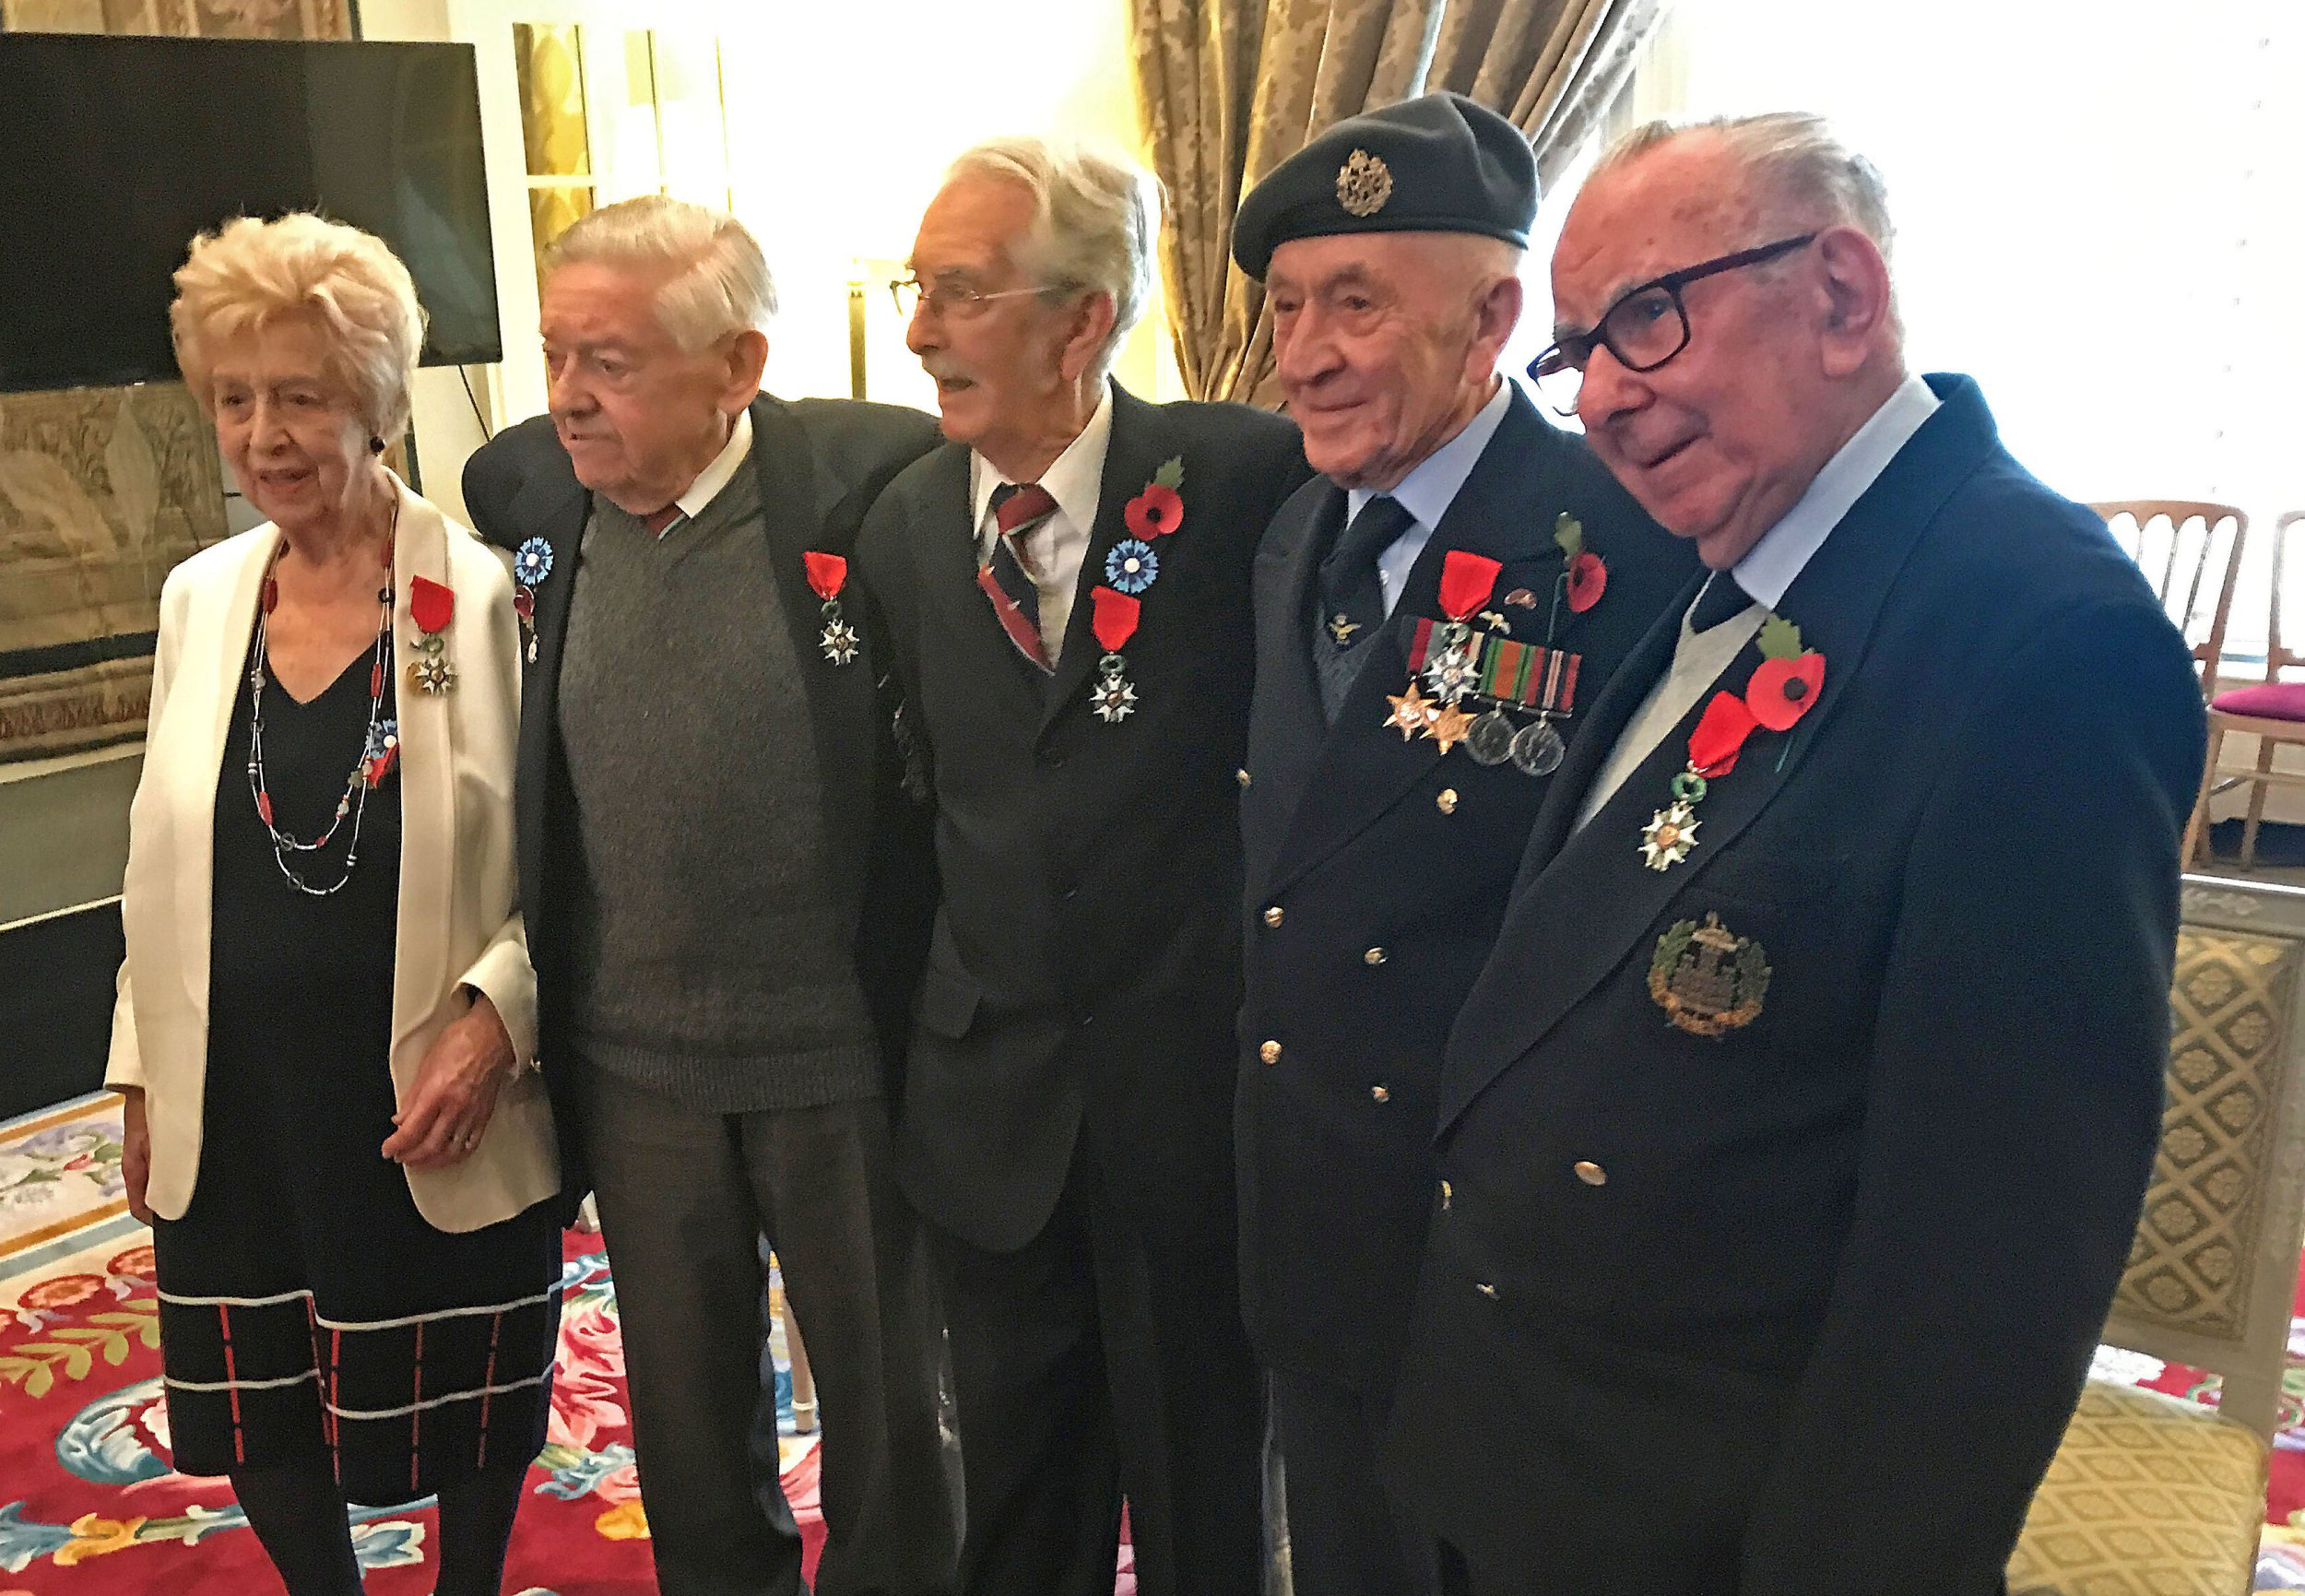 (left to right) Ruth Bourne, Alfred Hicks, Albert Avann, Joseph Randall and Thomas Stonehouse after being presented with Legion d'Honneur Medal, for their role in liberating the country during the Second World War, at the French Ambassador's residence in central London. PRESS ASSOCIATION Photo. Picture date: Friday November 9, 2018. See PA story DEFENCE Legion. Photo credit should read: Rick Goodman/PA Wire